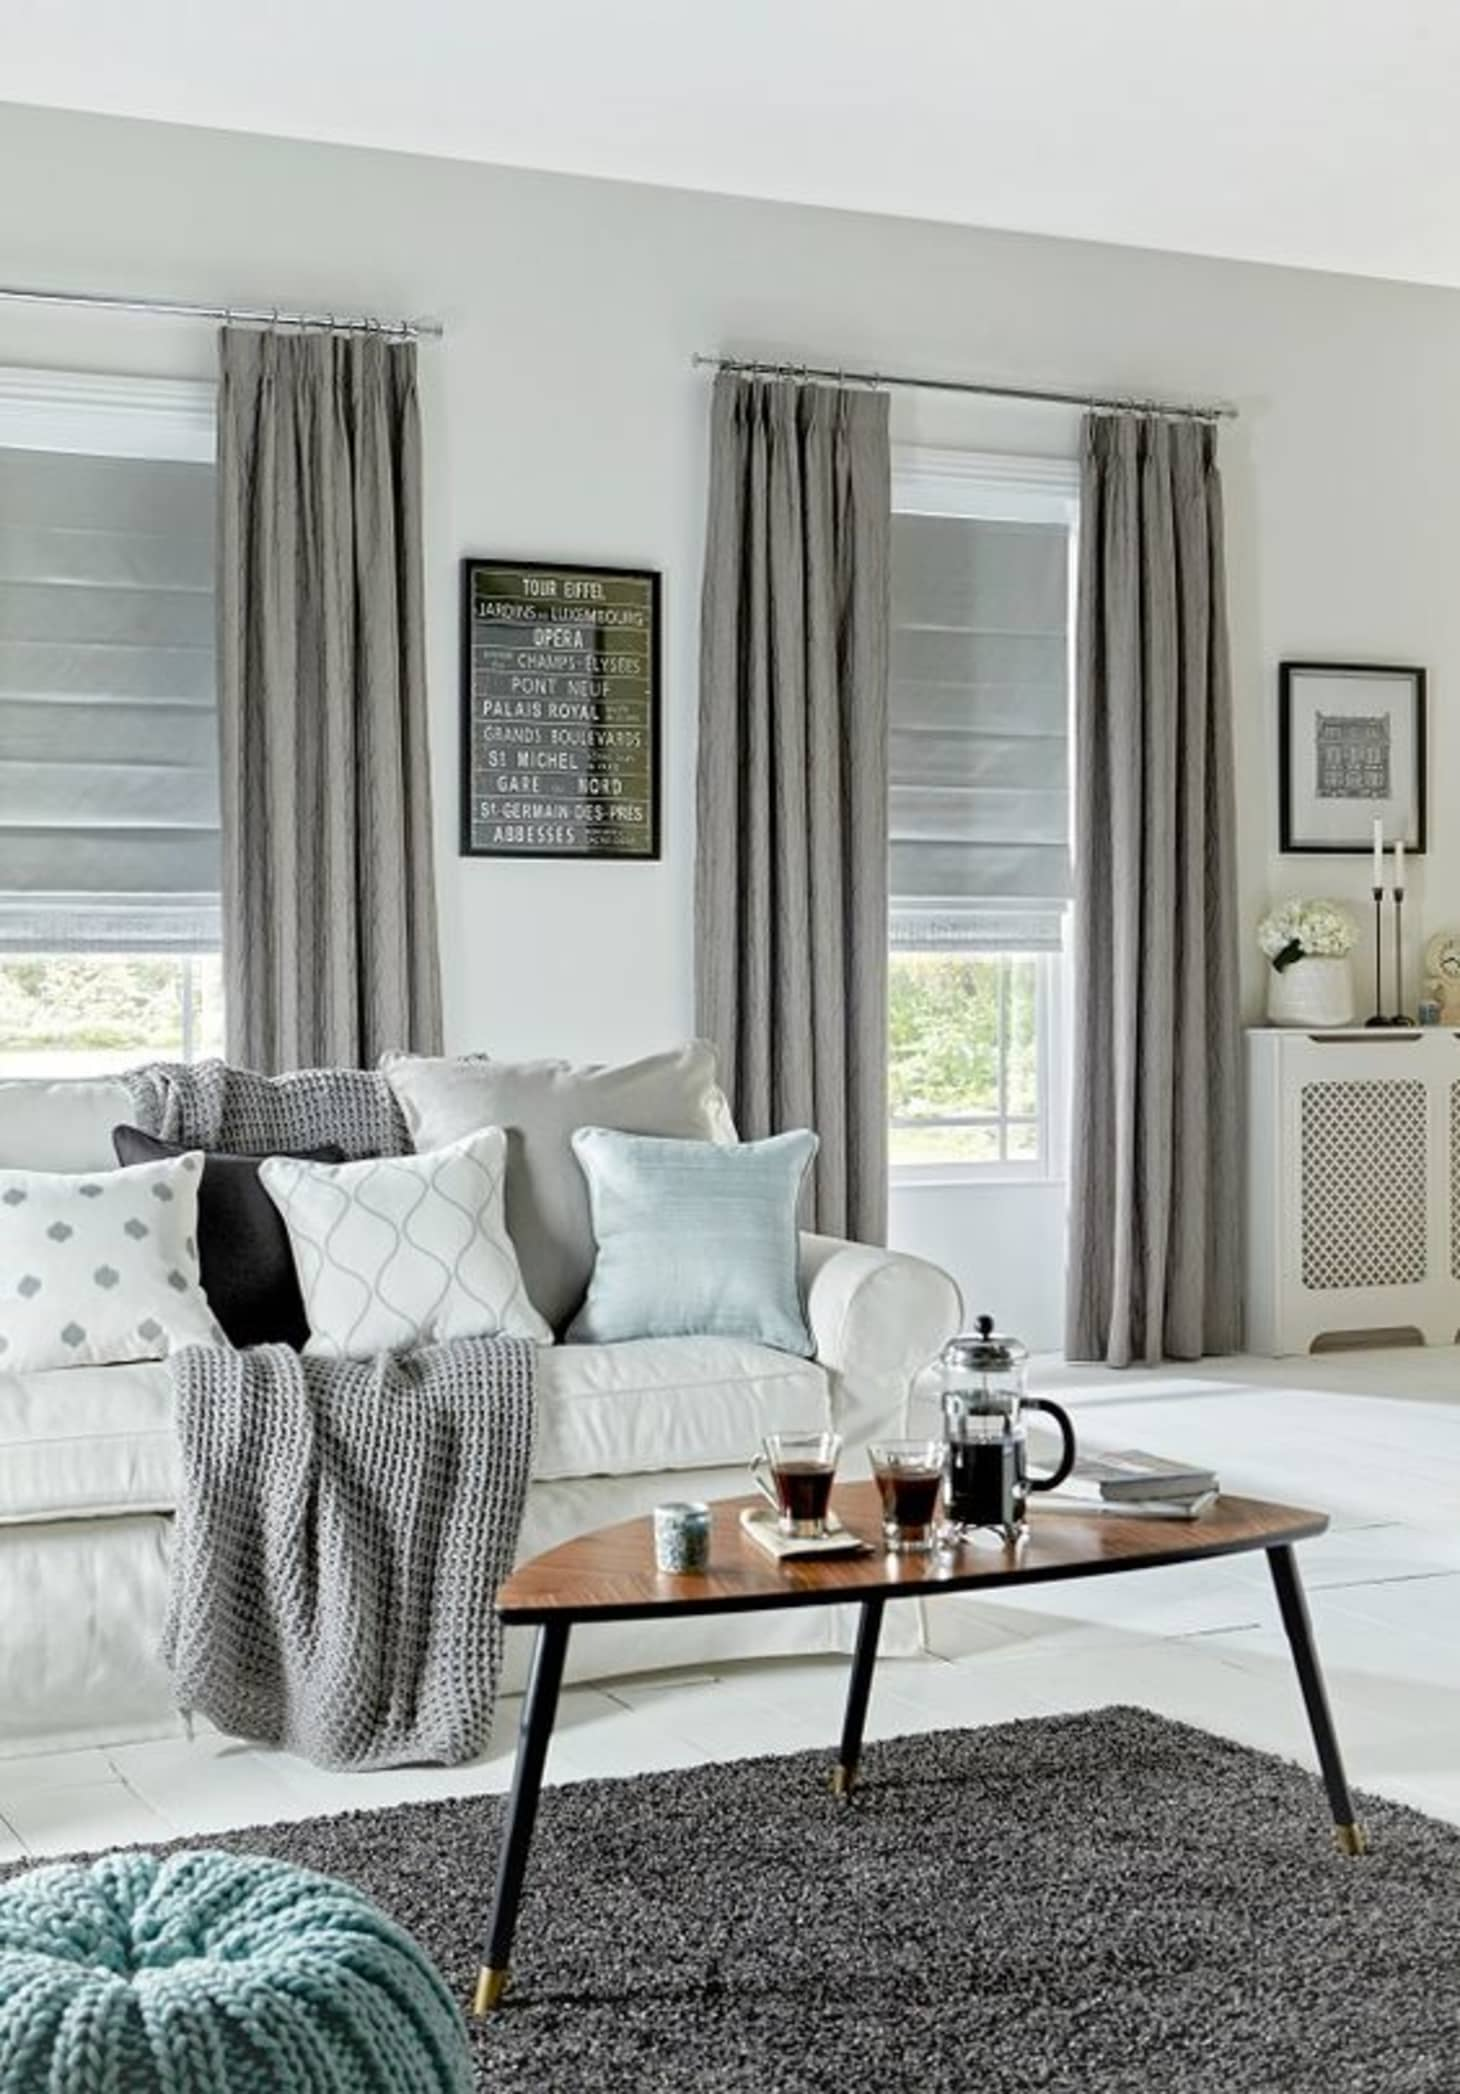 5 Draft Stopping Home Solutions That Arenu0027t Ugly